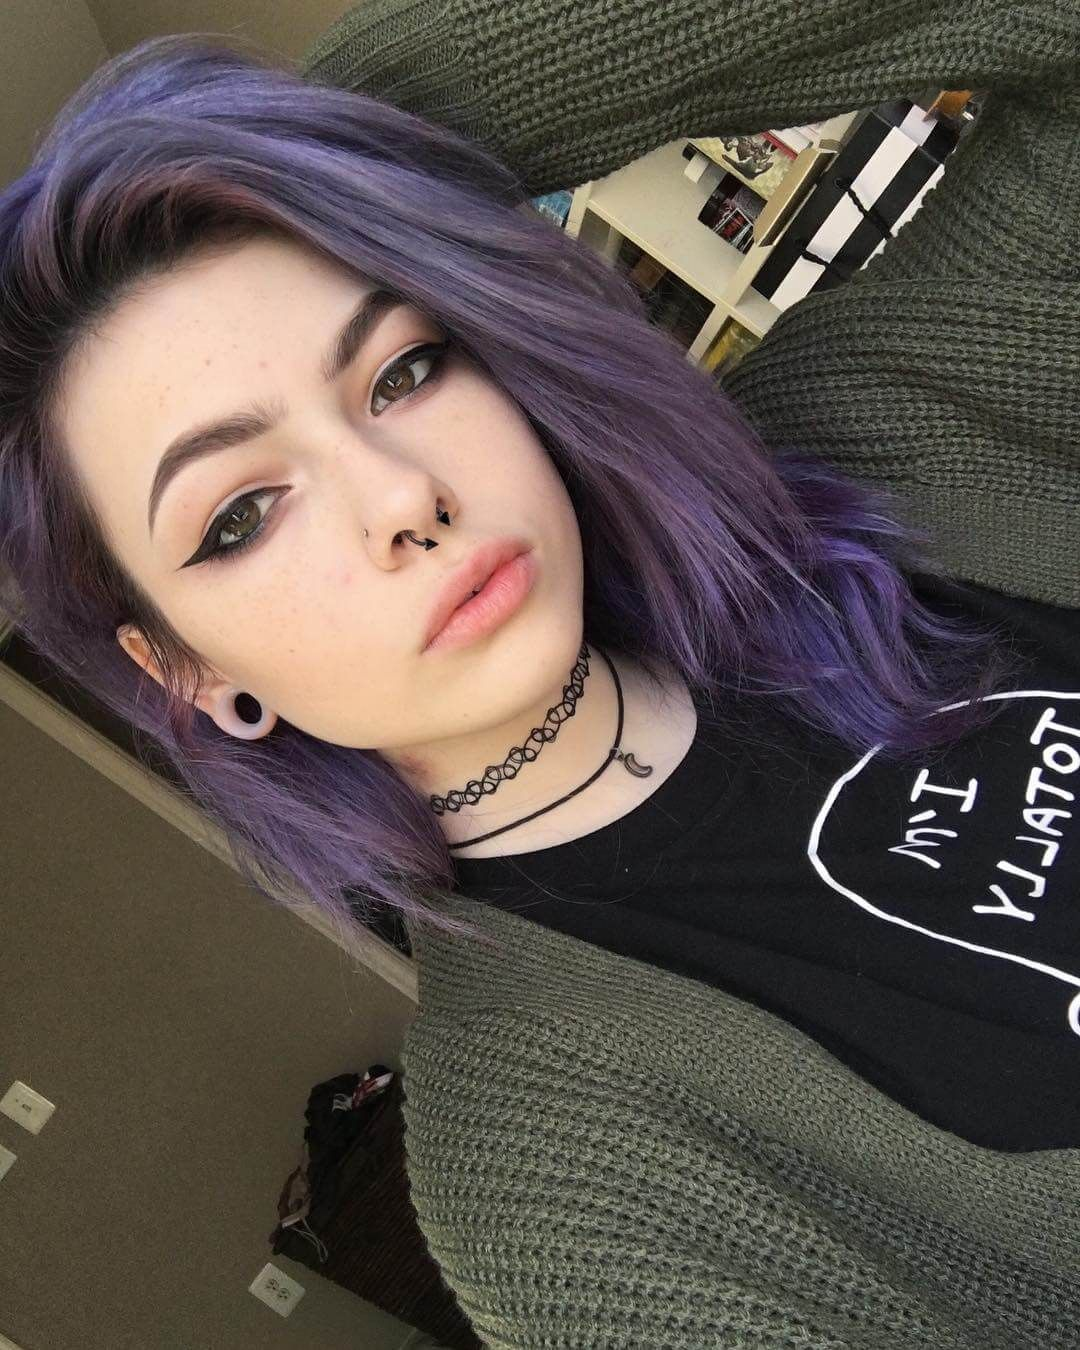 30 More Edgy Hair Color Ideas Worth Trying Edgy Hair Edgy Hair Color Purple Hair